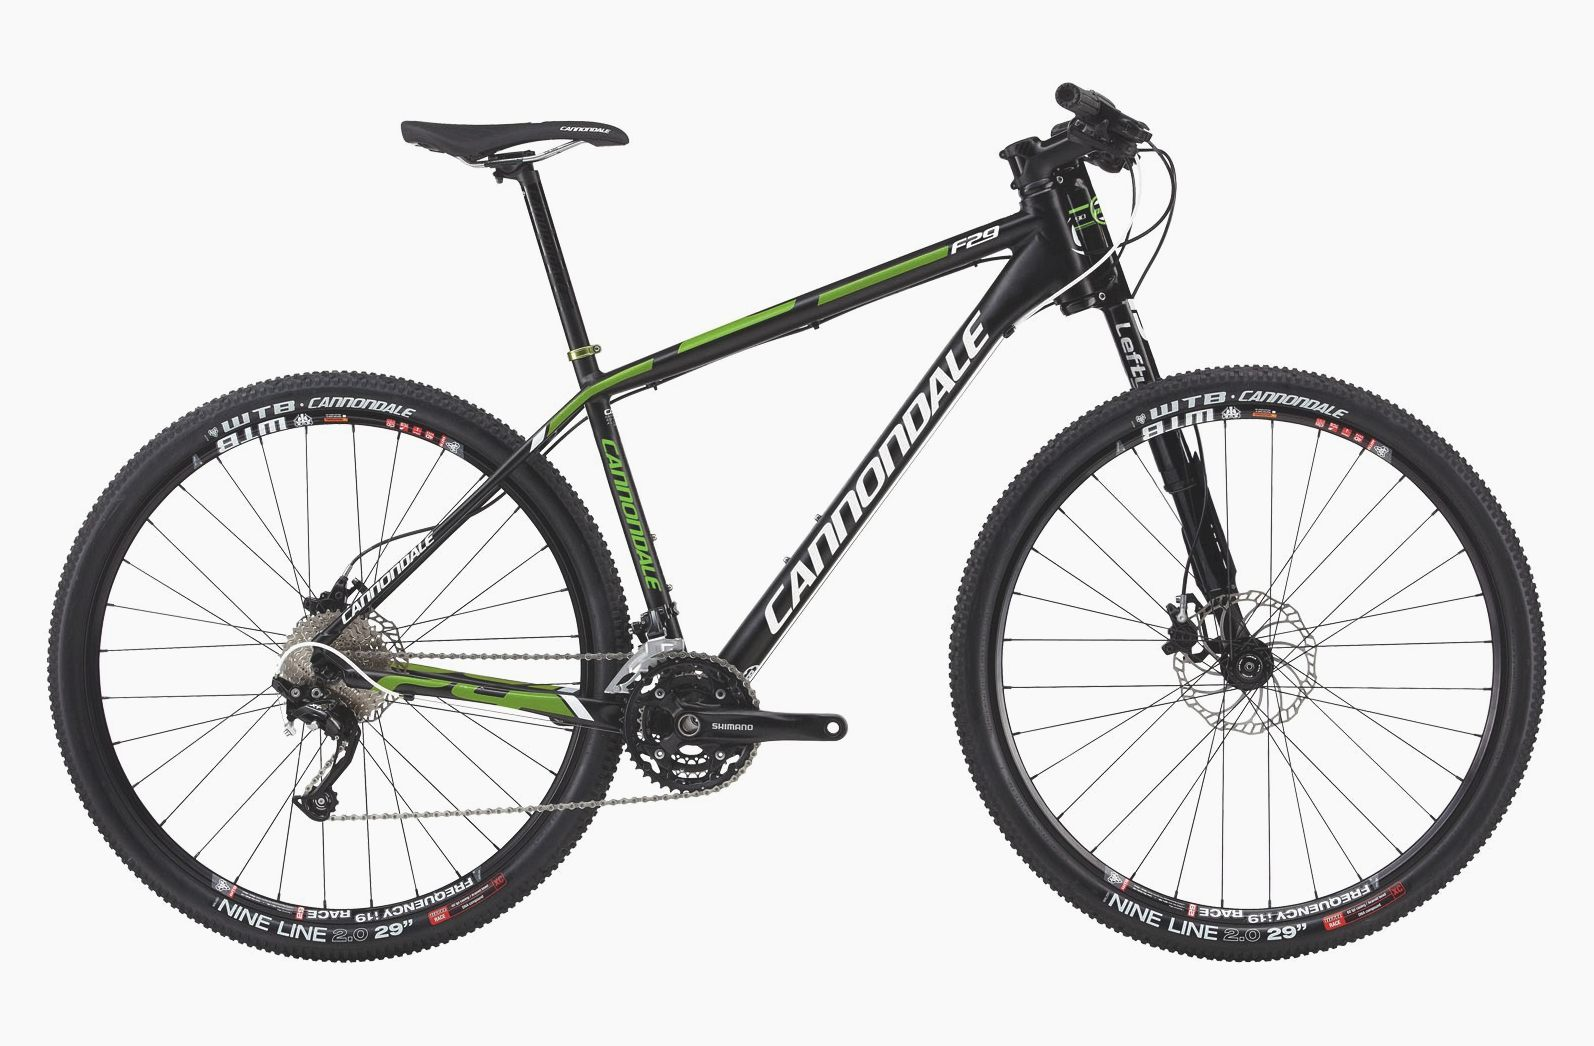 Cannondale S Series 440 images #69996